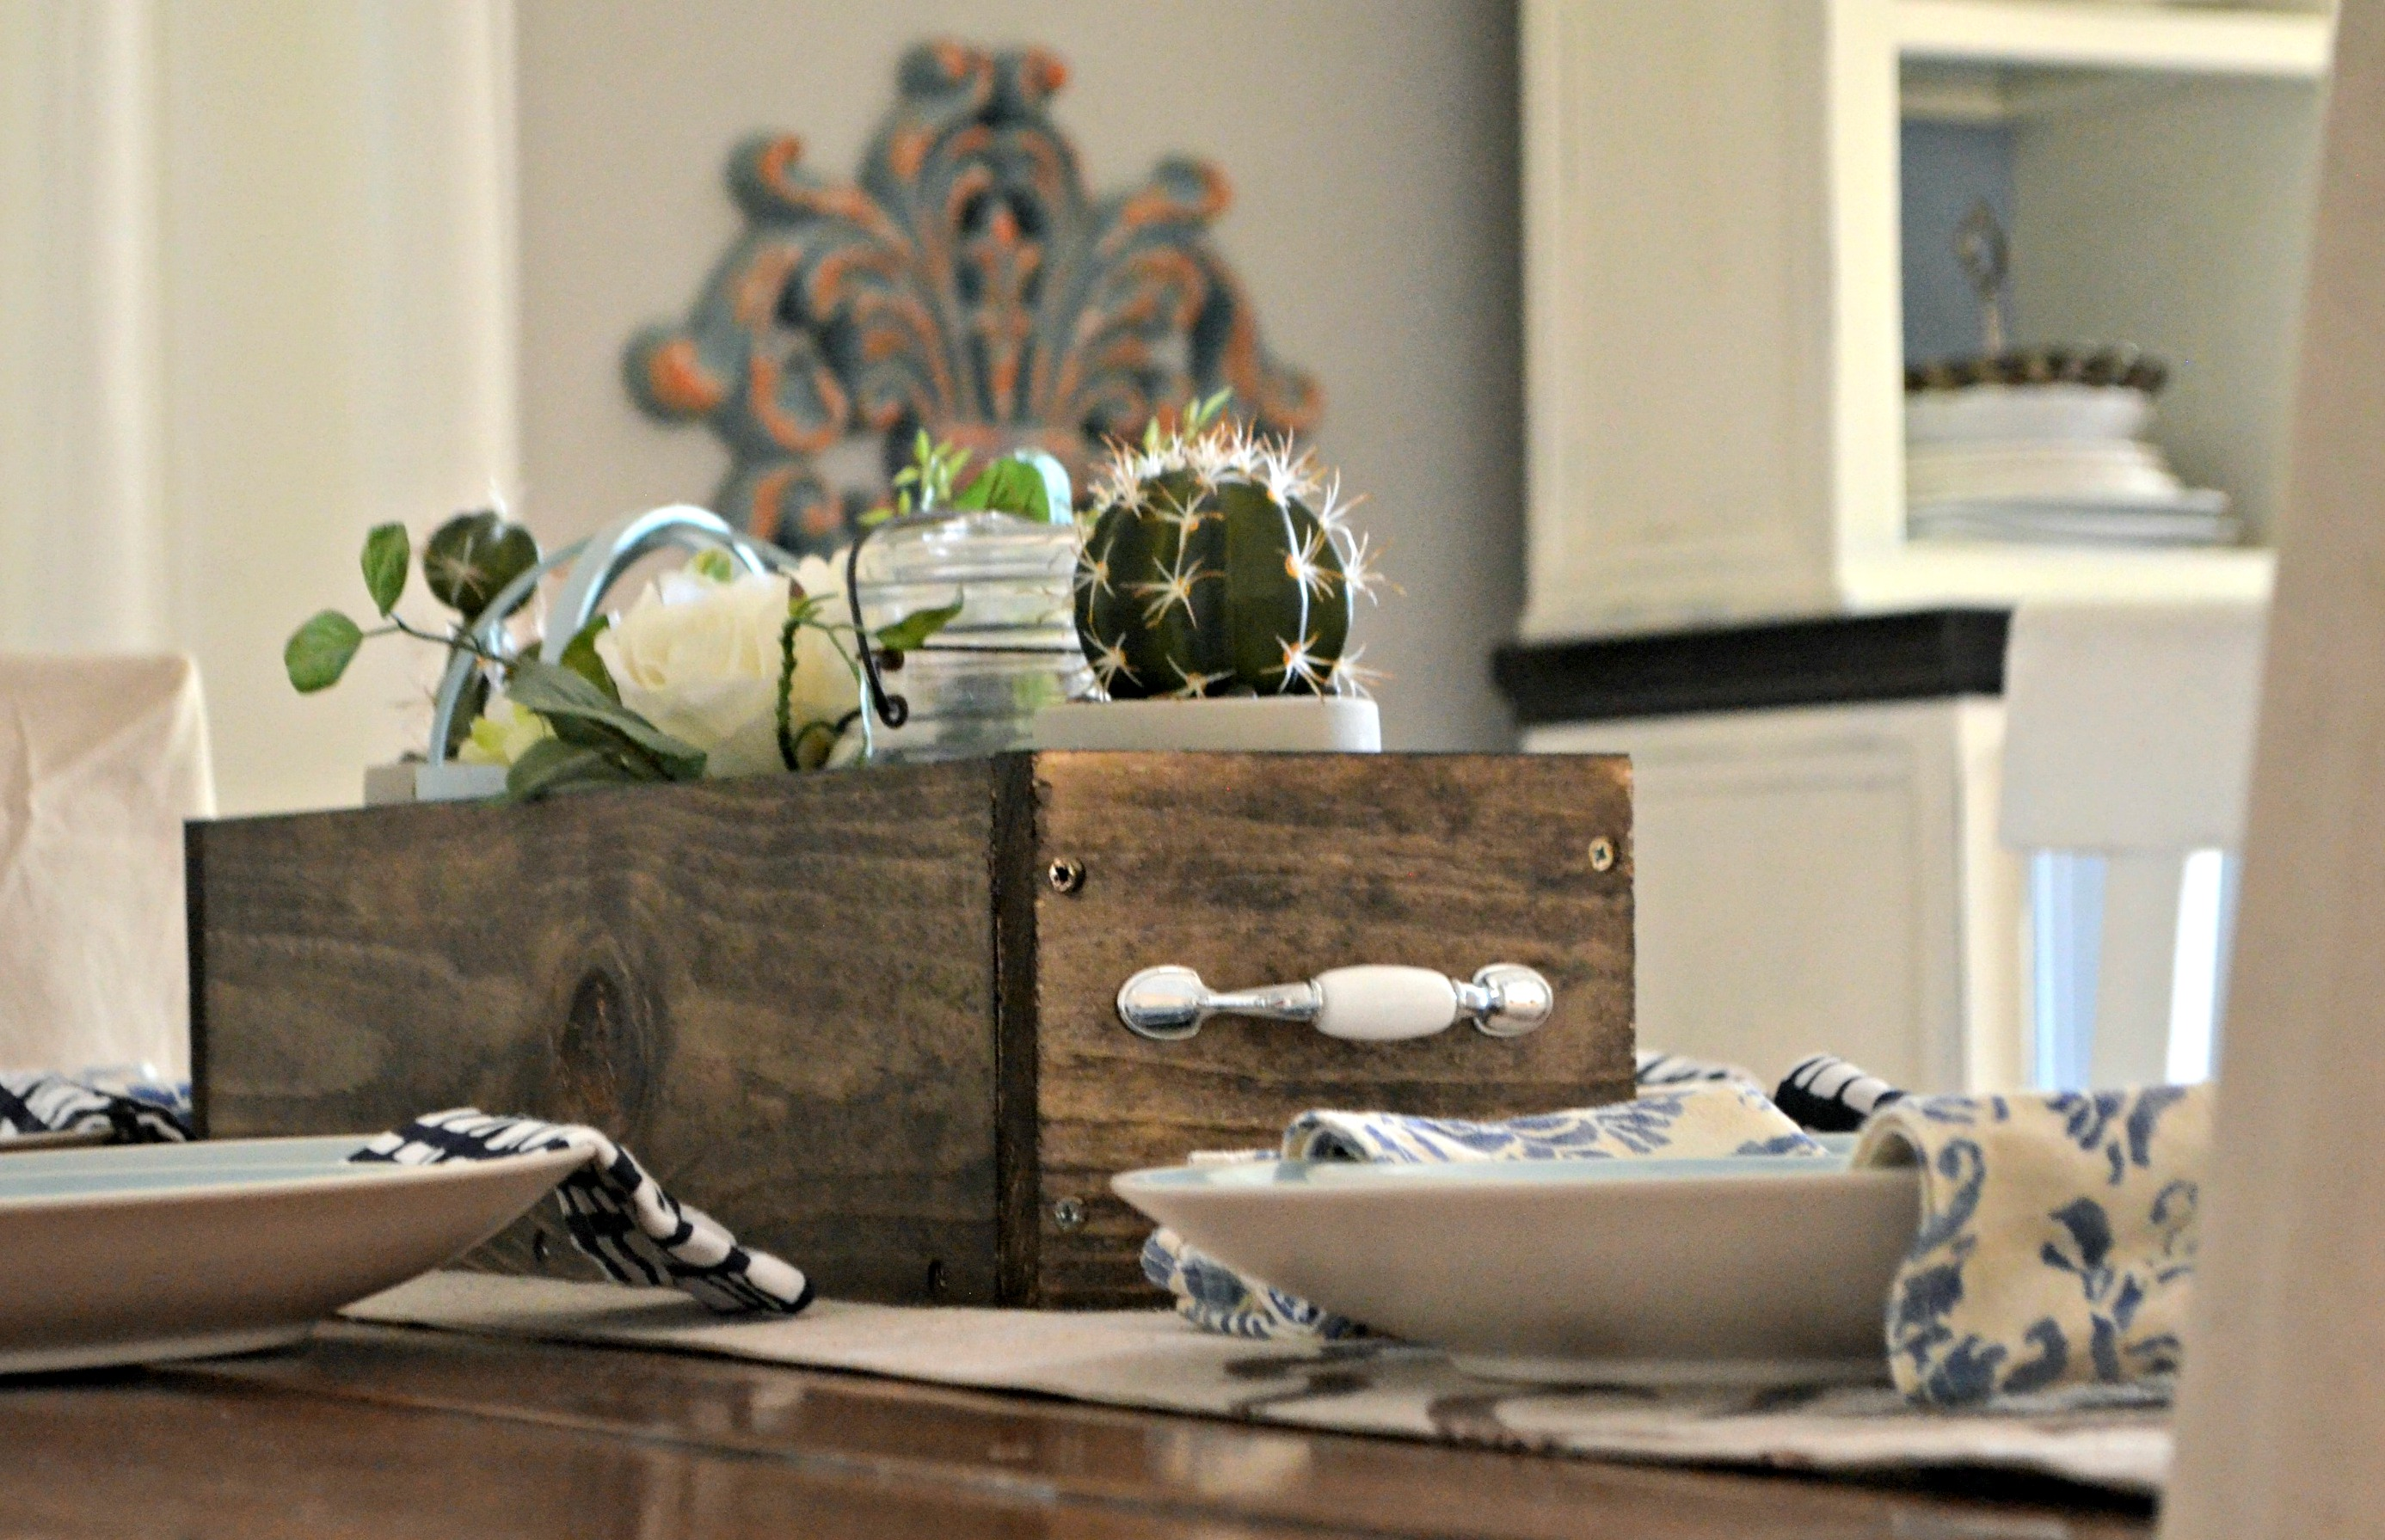 diy rustic farmhouse wood box centerpiece – filled with cute items like cacti, a vase, and a candle